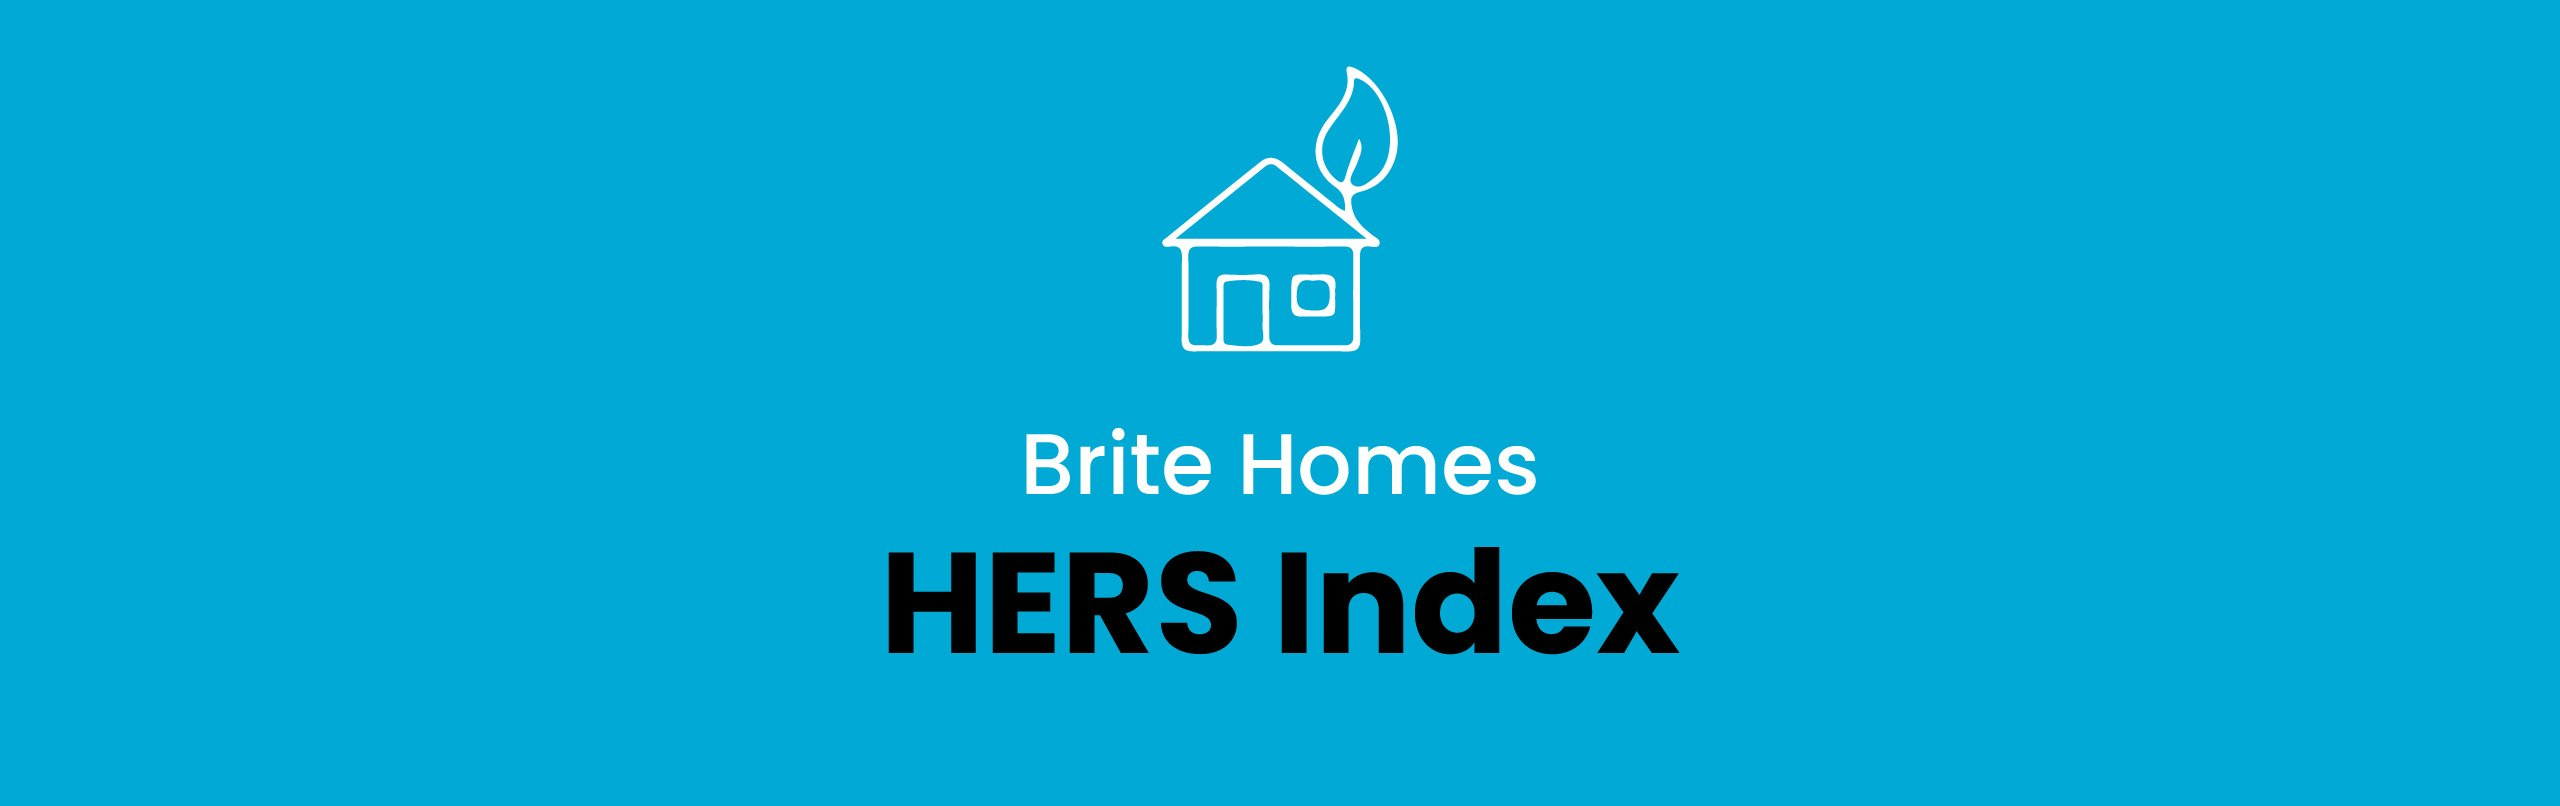 Brite Homes Hers Index